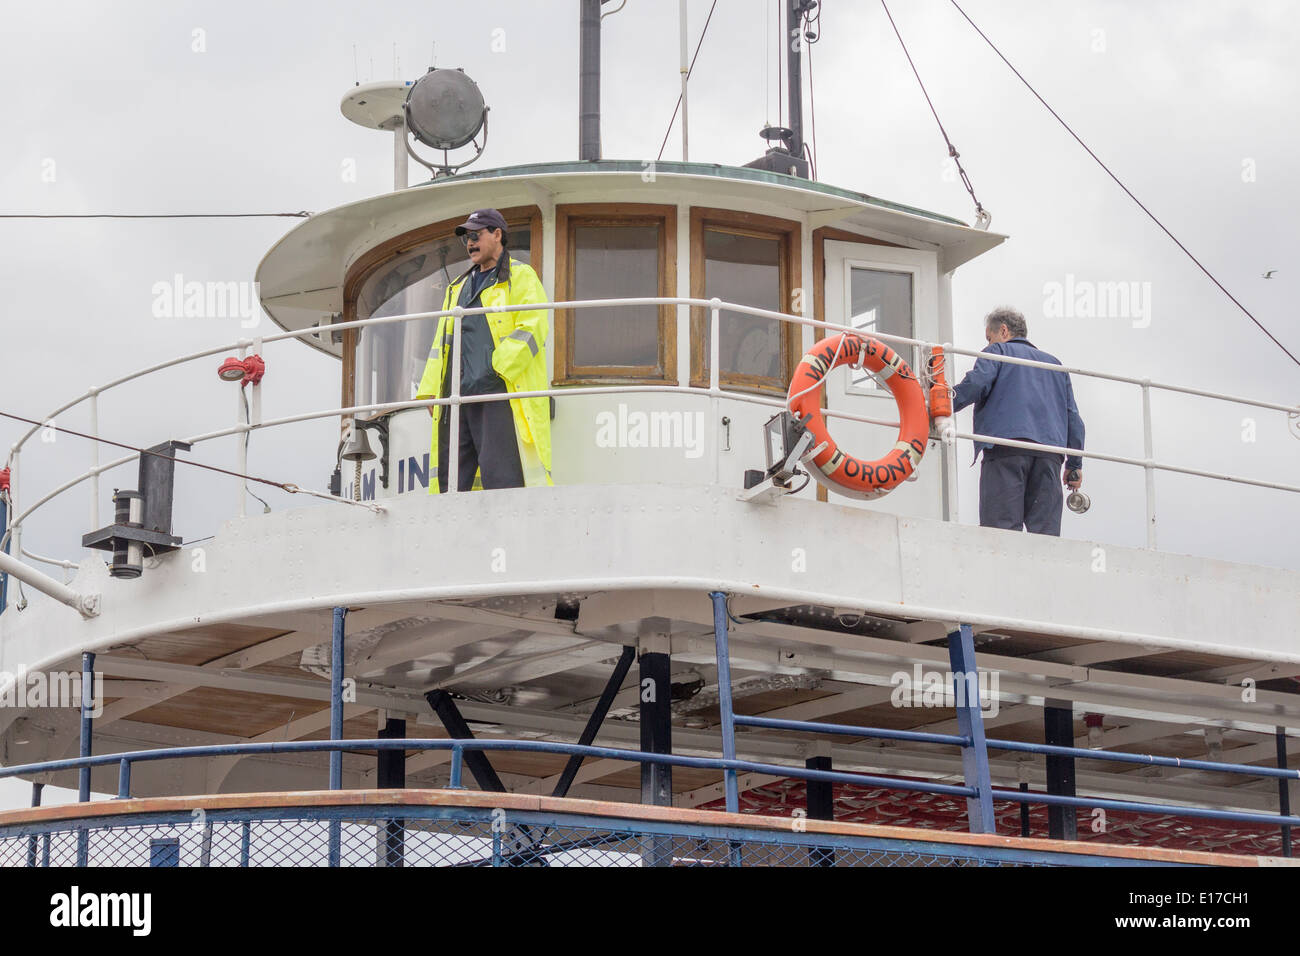 Captain of Toronto Ferry supervising the docking of his ferry at Ward's Islalnd in Toronto Ontario - Stock Image